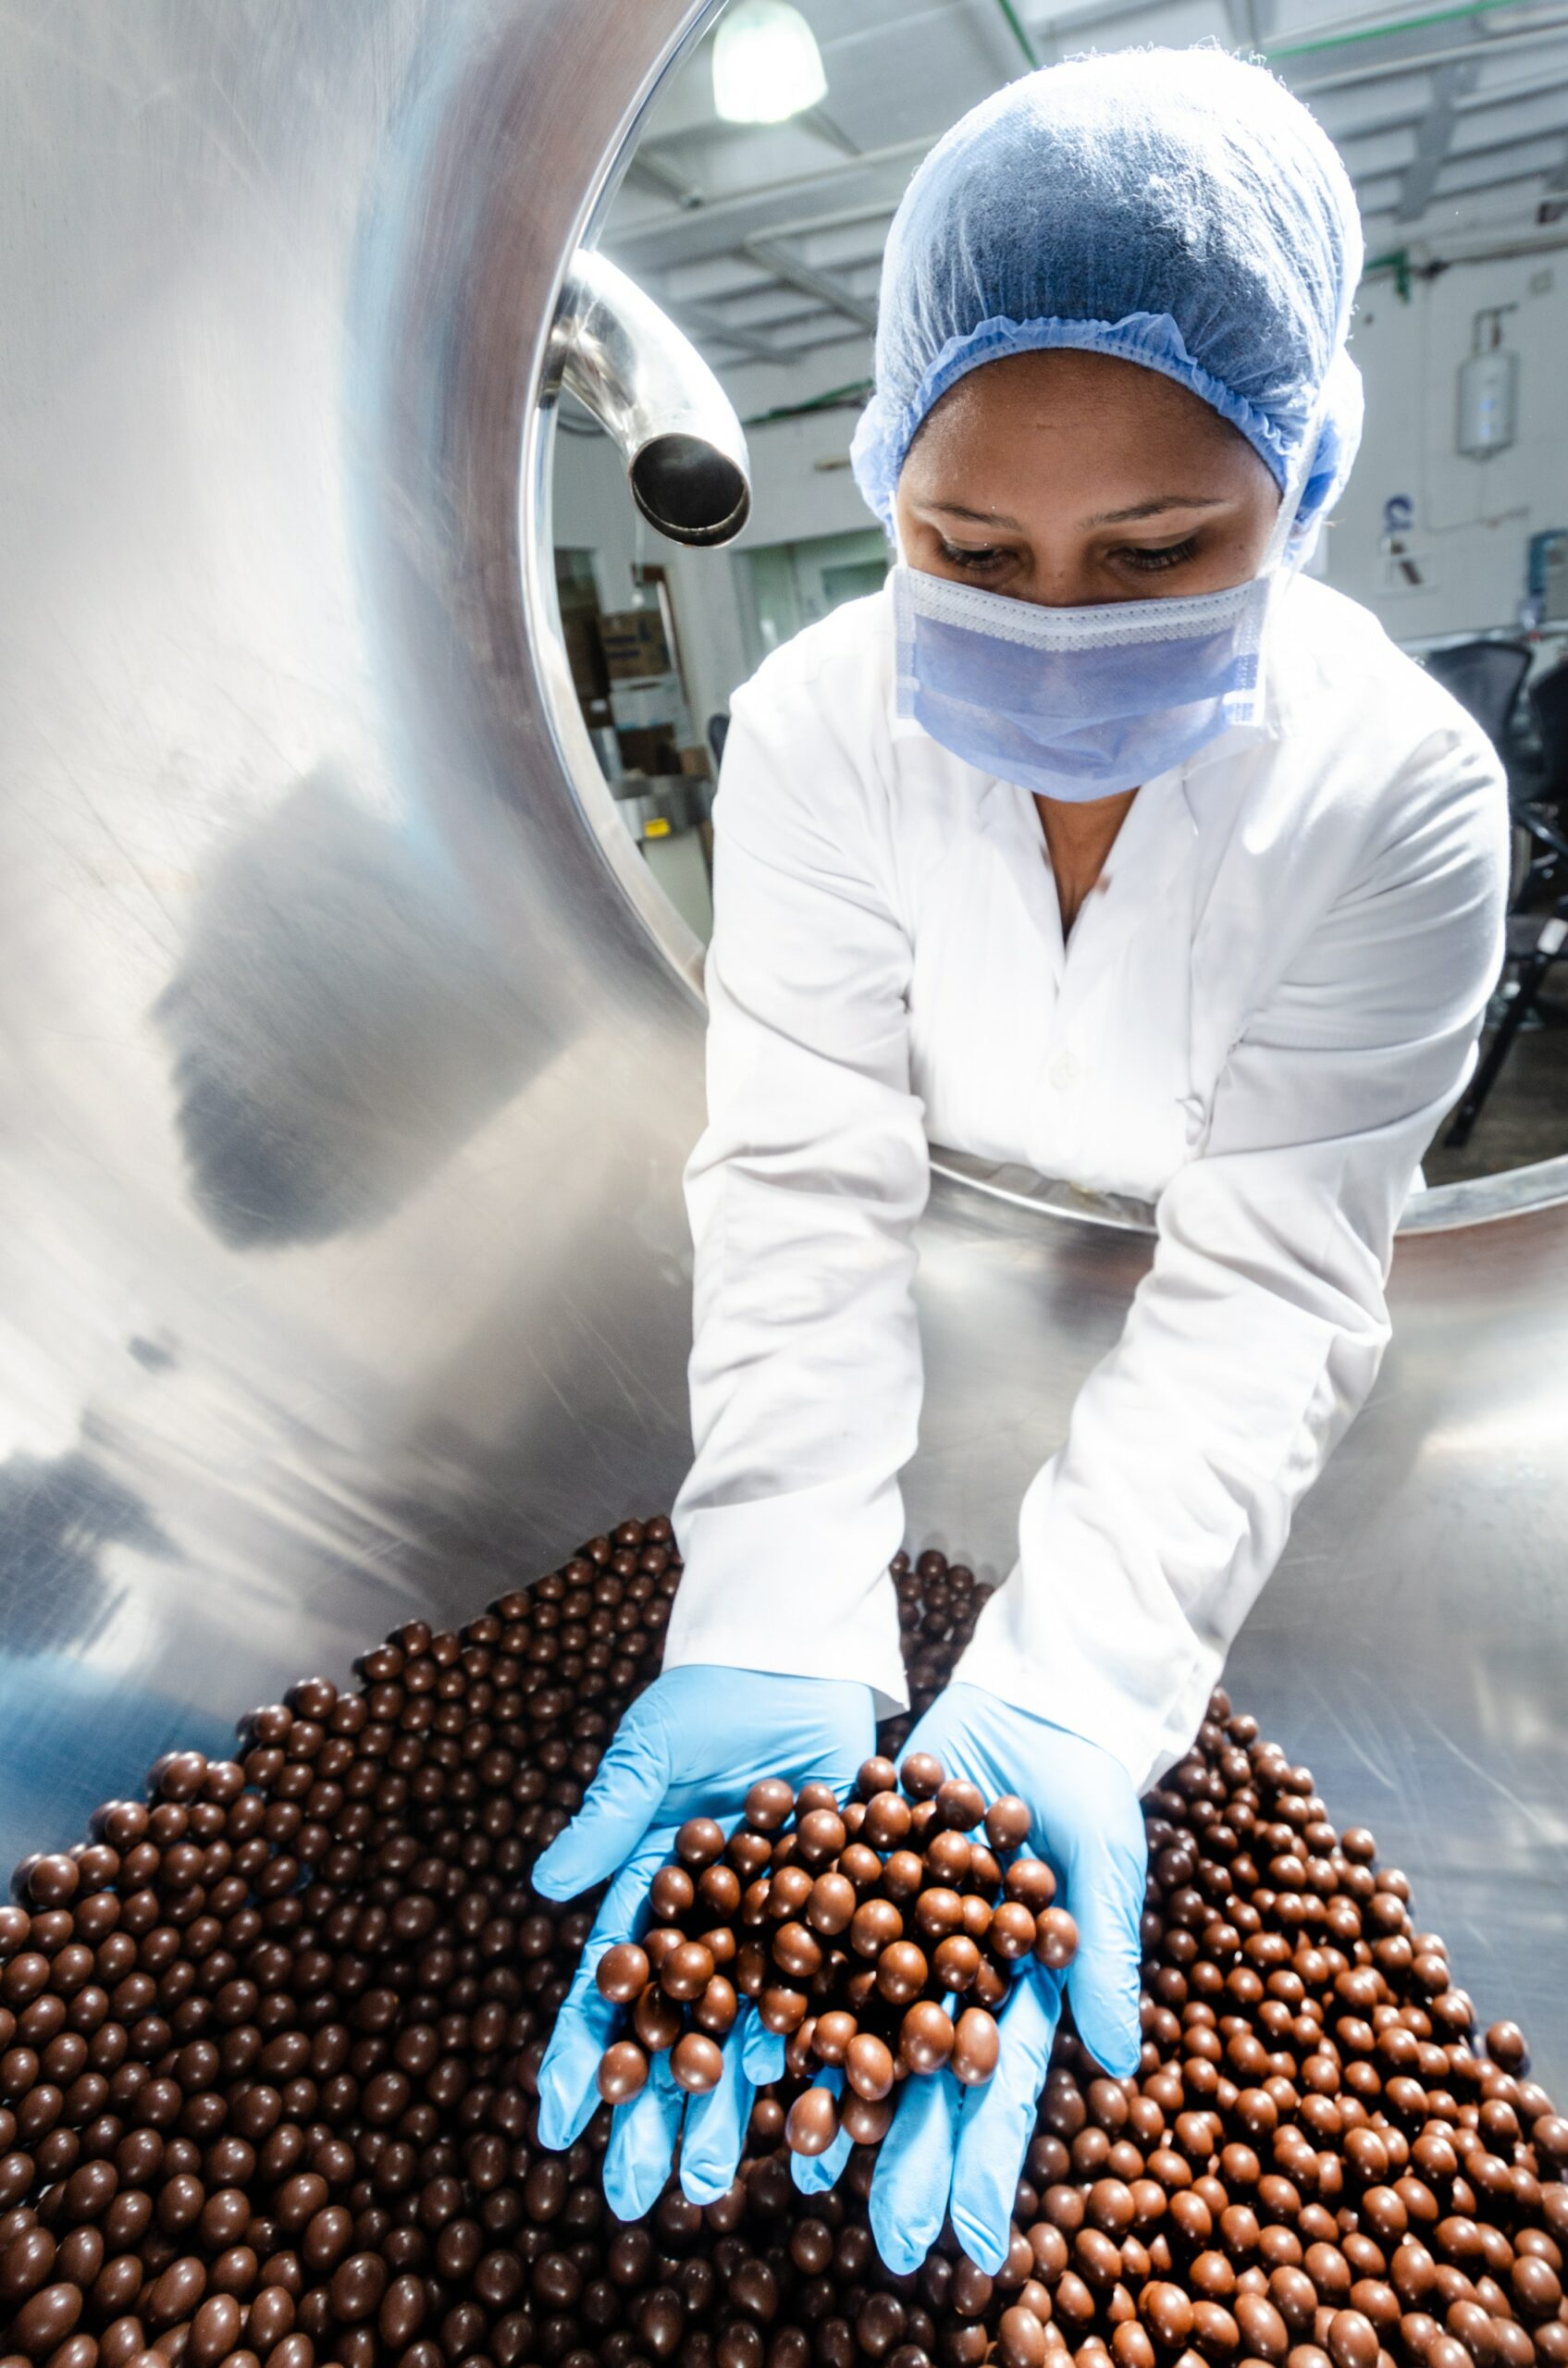 Organigram Builds World Class Cannabis Infused-Chocolate Production Team